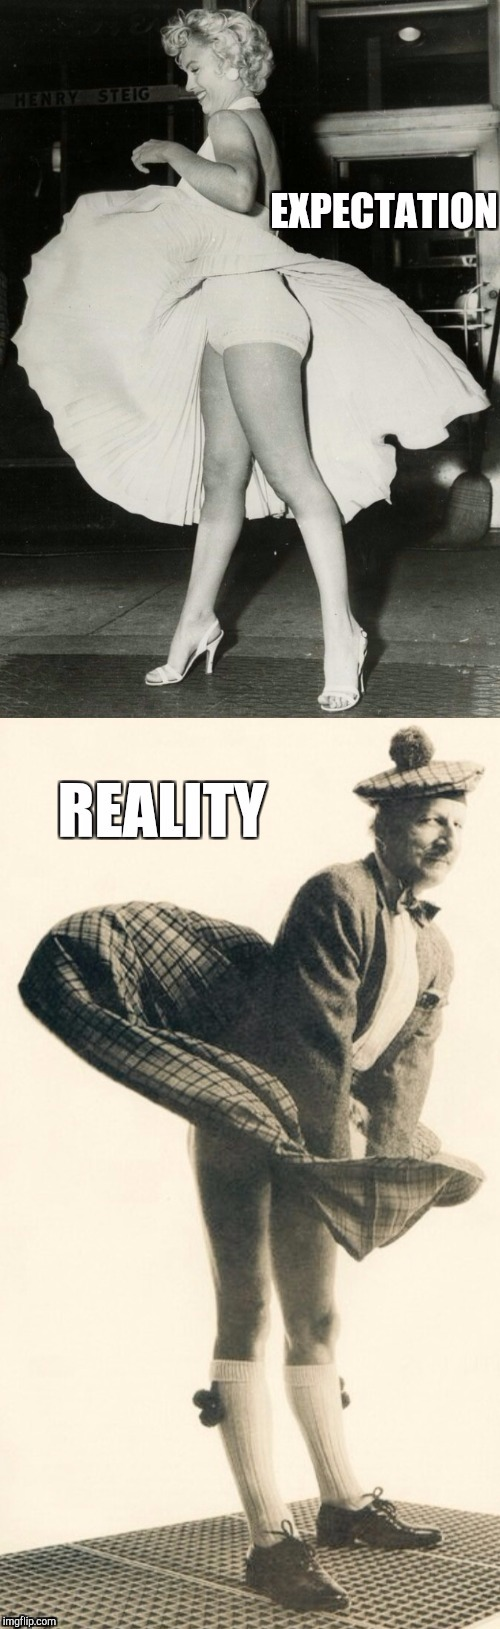 B&W Meme Week, a Pipe_Picasso event | . | image tagged in jbmemegeek,black and white,scotsman,expectation vs reality,marilyn monroe | made w/ Imgflip meme maker